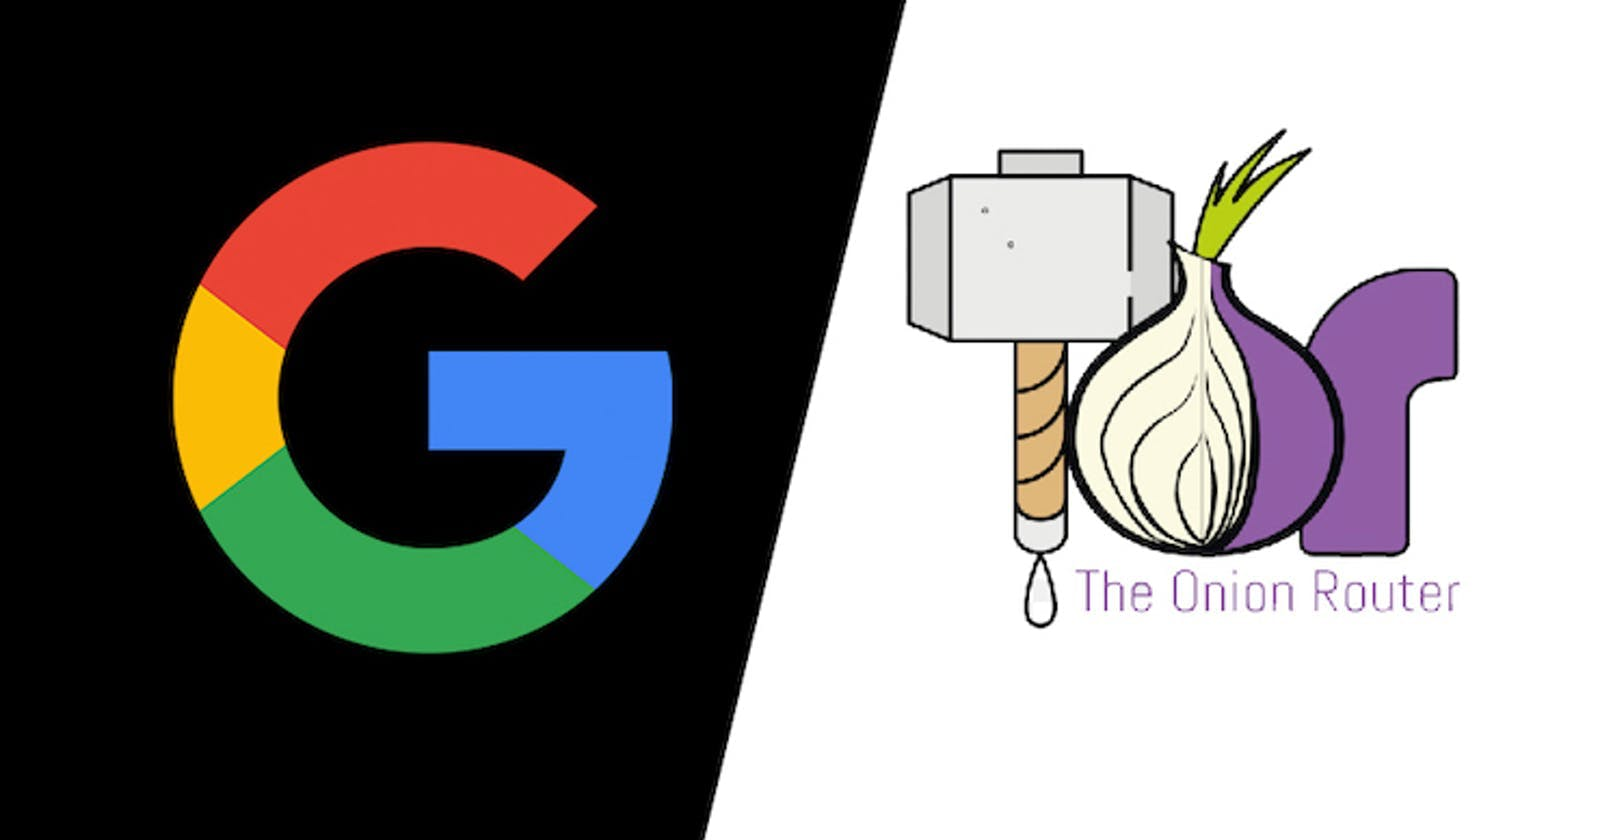 Can we use Google services without compromising privacy?